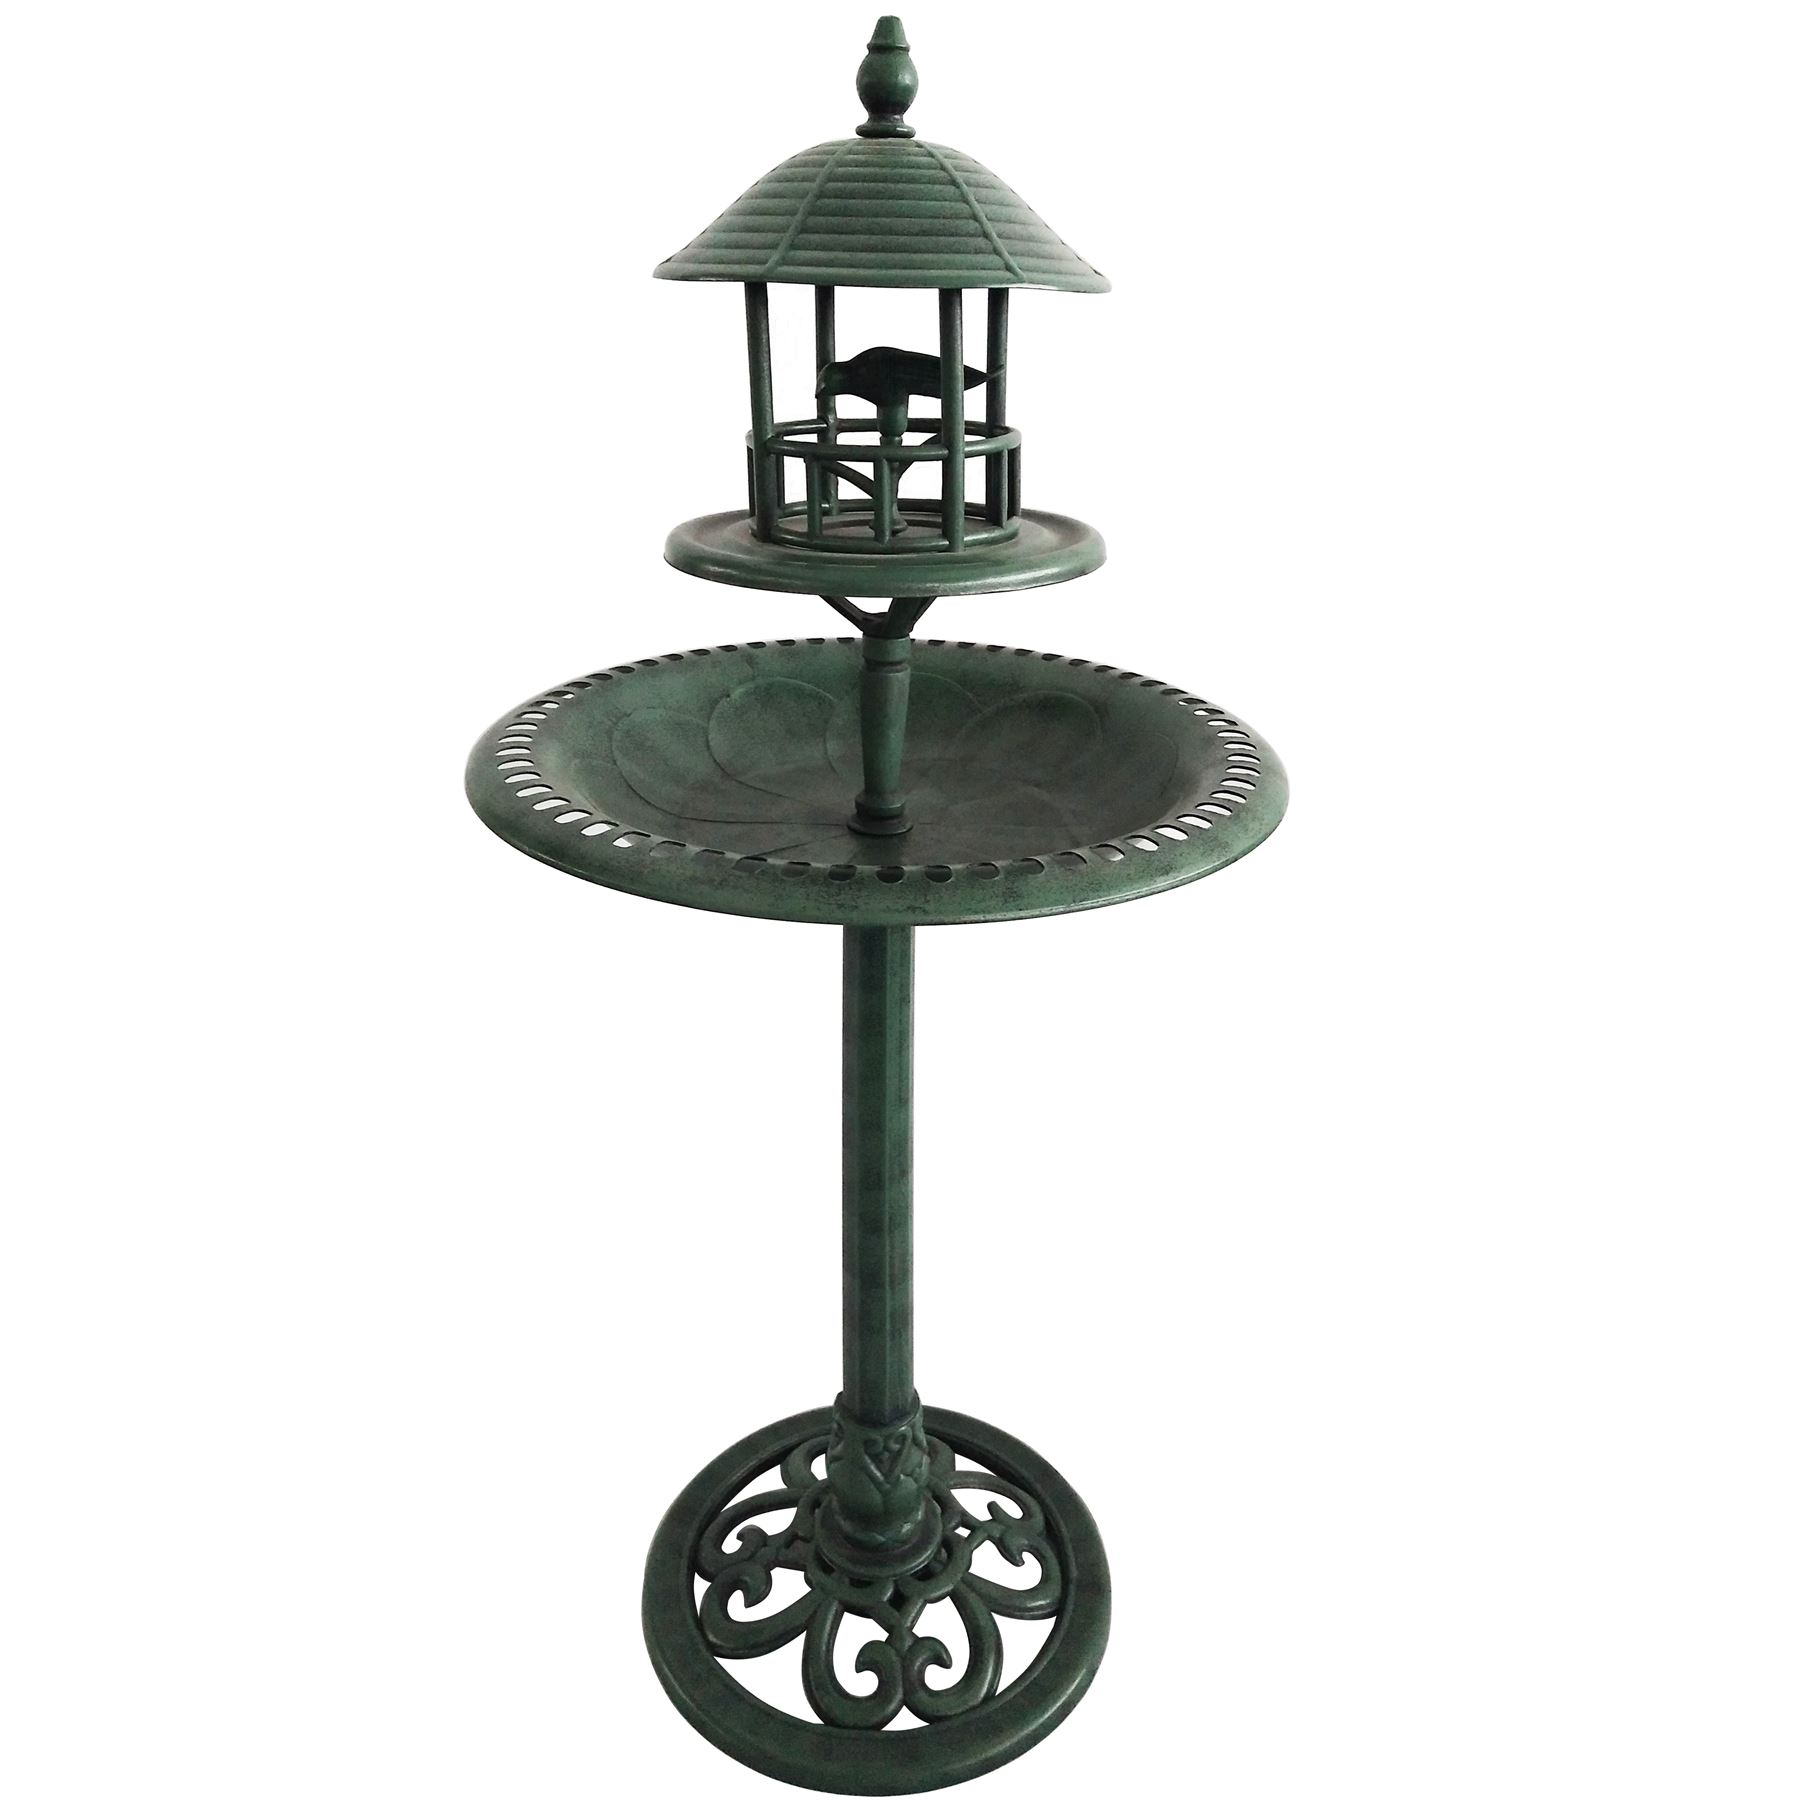 Bird-Bath-Feeder-Bowl-With-Solar-Light-Garden-amp-Patio-Bird-Feeding-Table-Station thumbnail 7